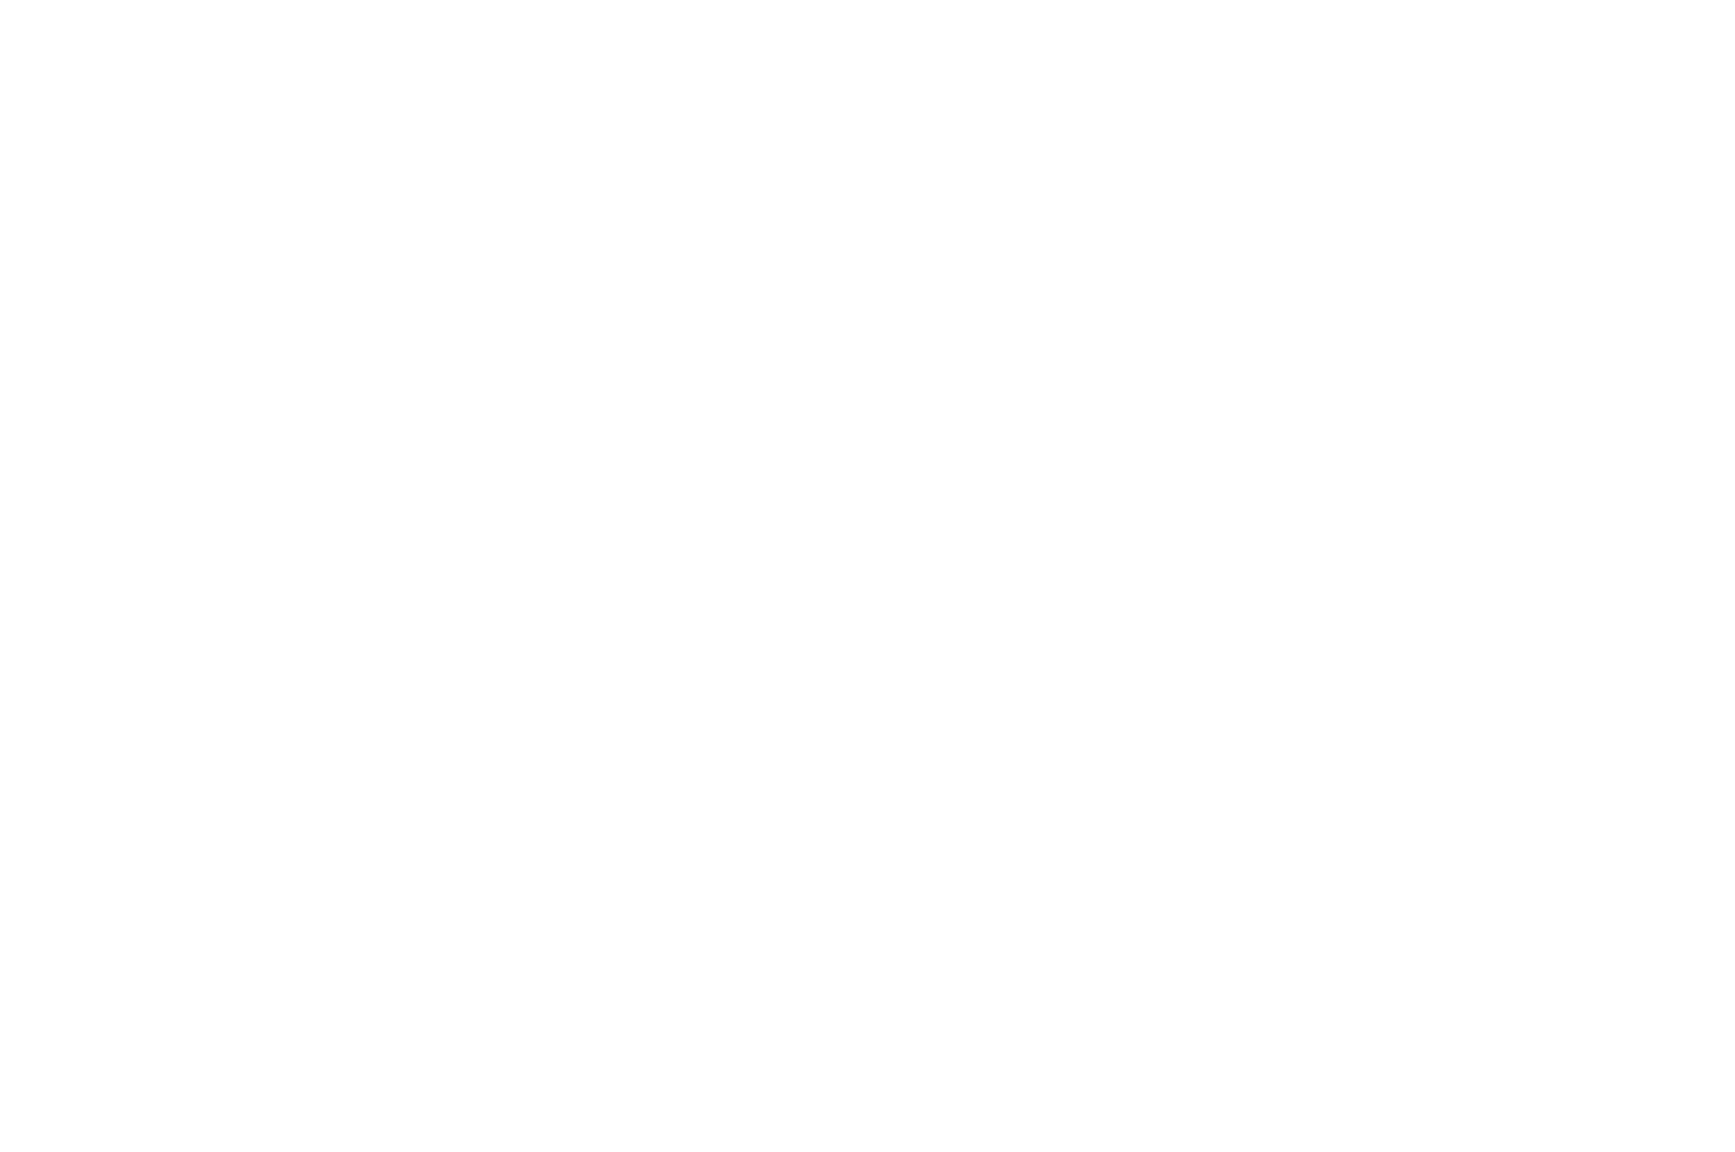 OFFICIAL-SELECTION-Tokyo-Lift-Off-Film-Festival-2020